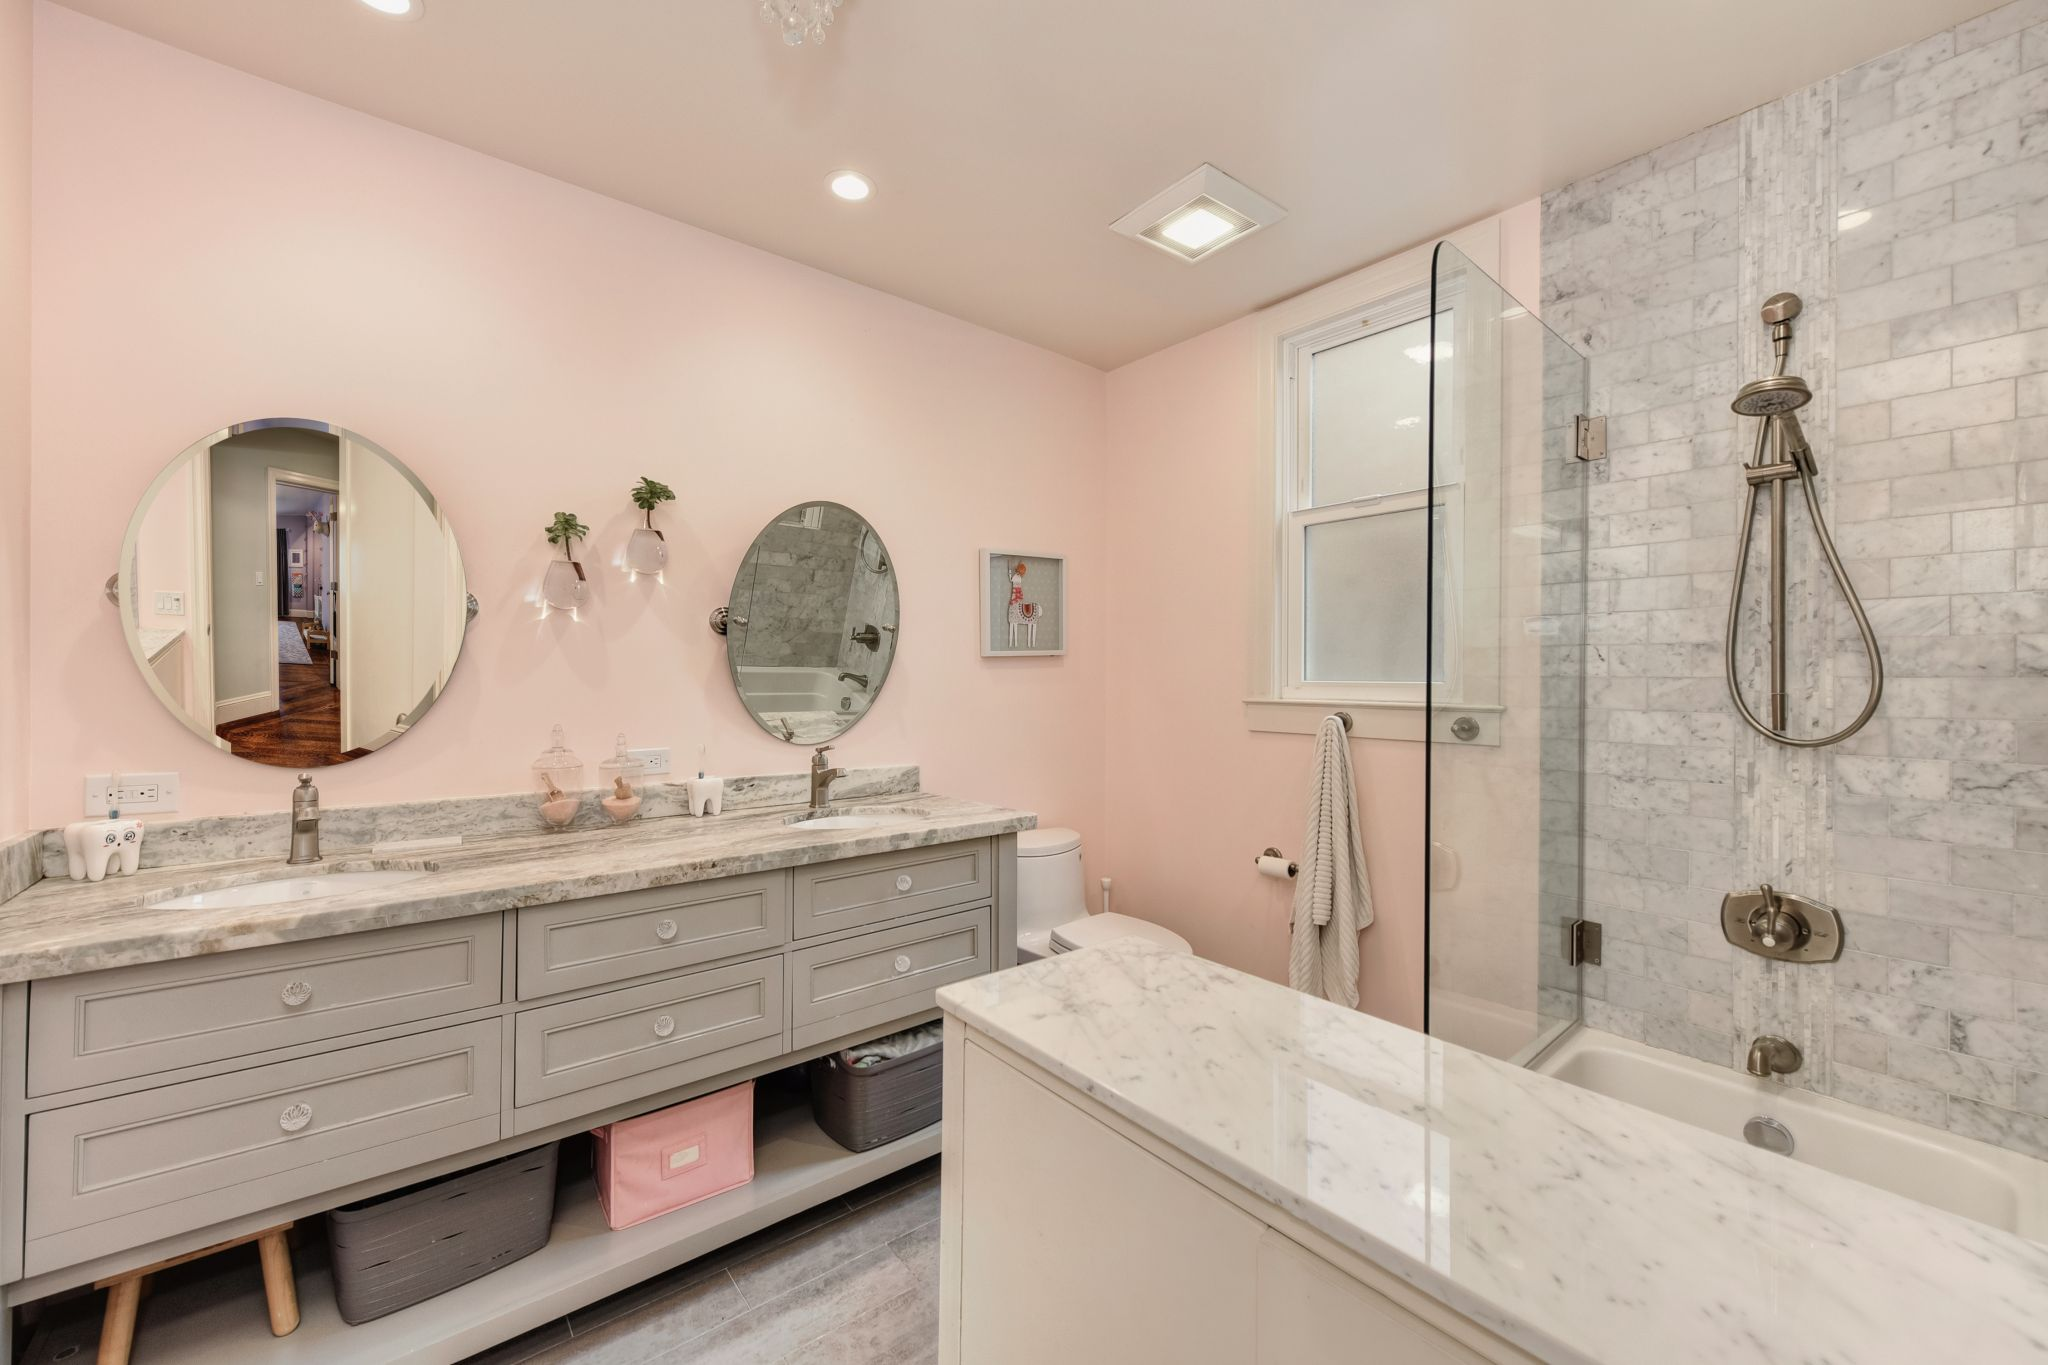 A bathroom with a shower tiled in marble is shared by the two other bedrooms.